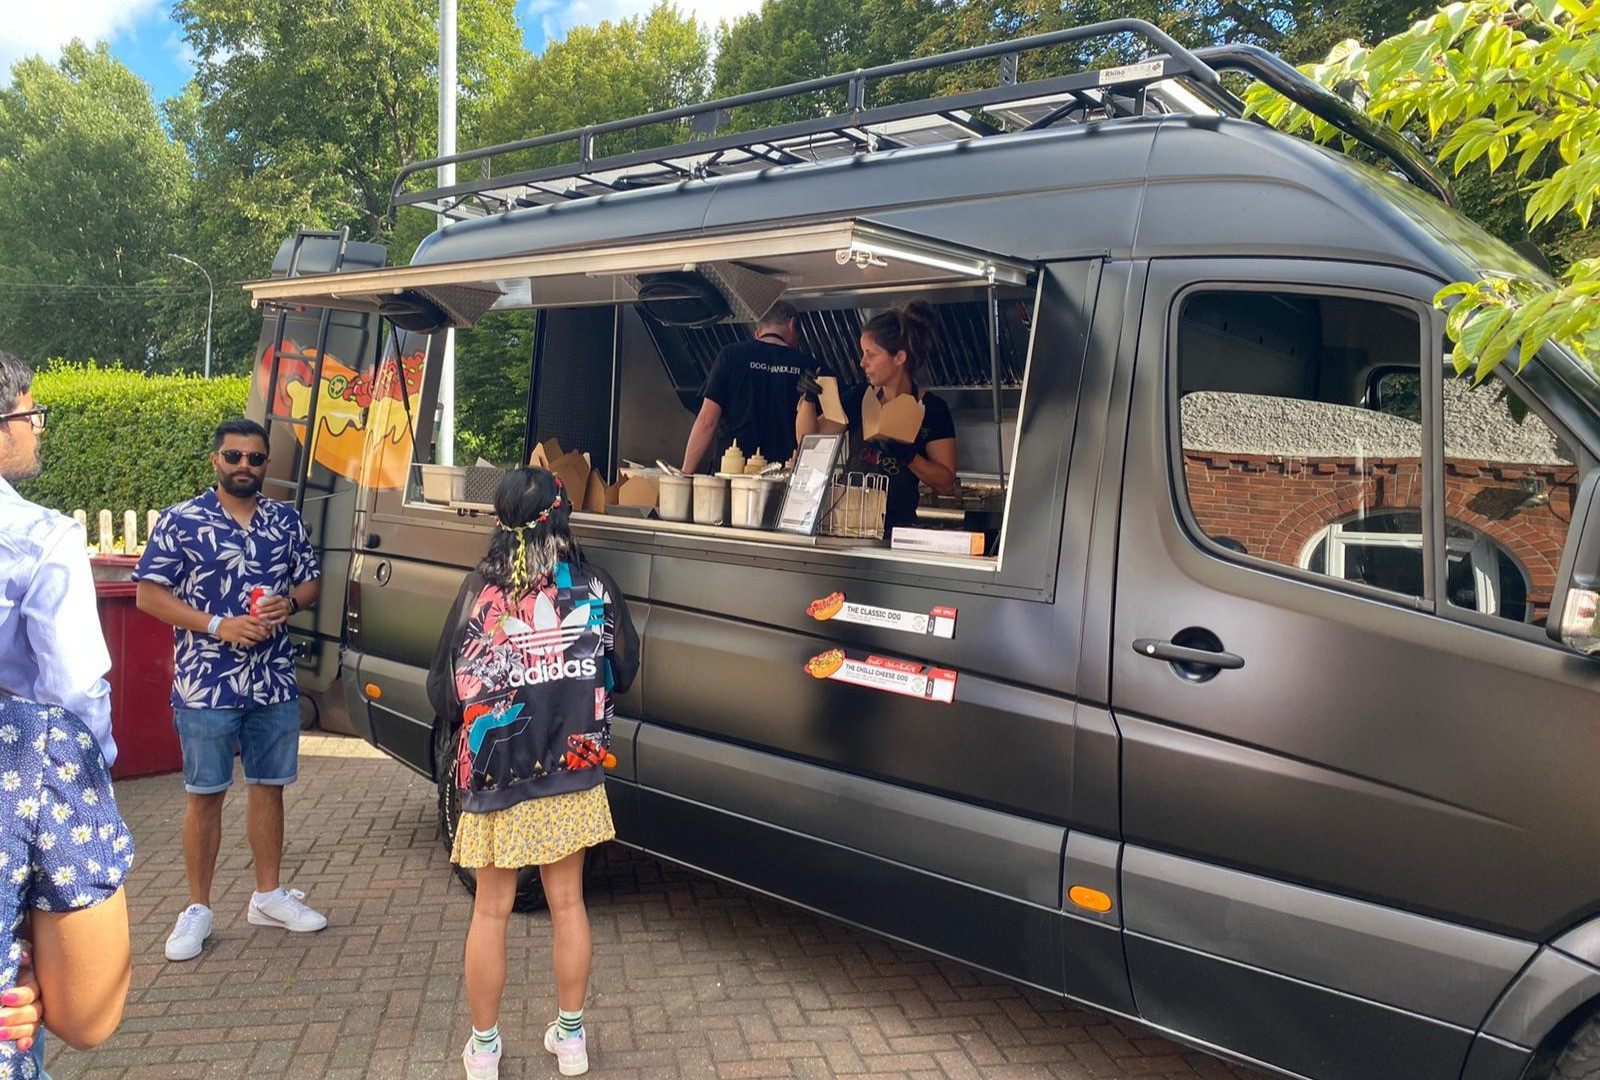 The Best Food Truck at a Cool Party